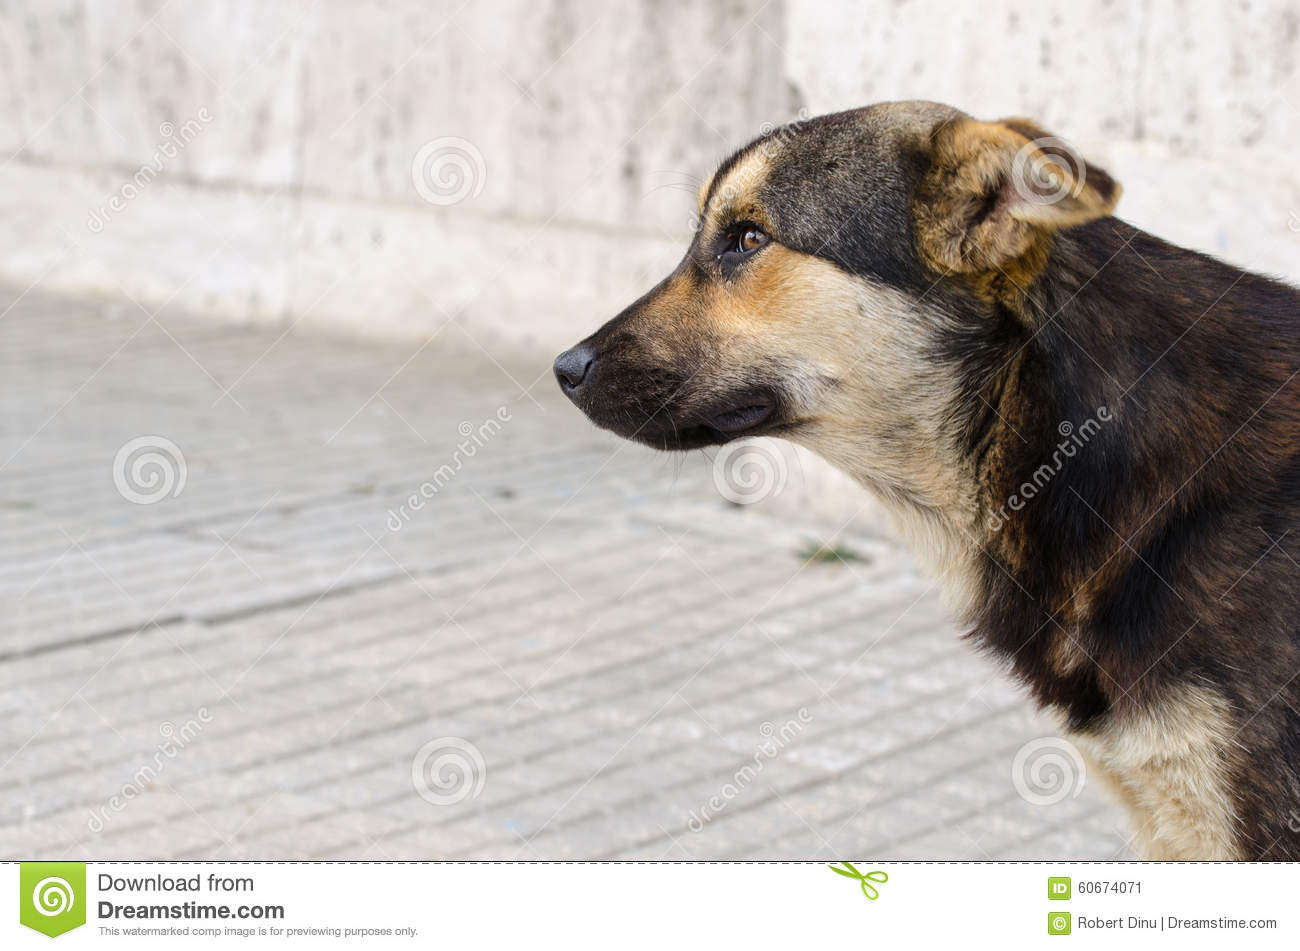 Profile portrait of a dog with no owner. Stray mongrel dog